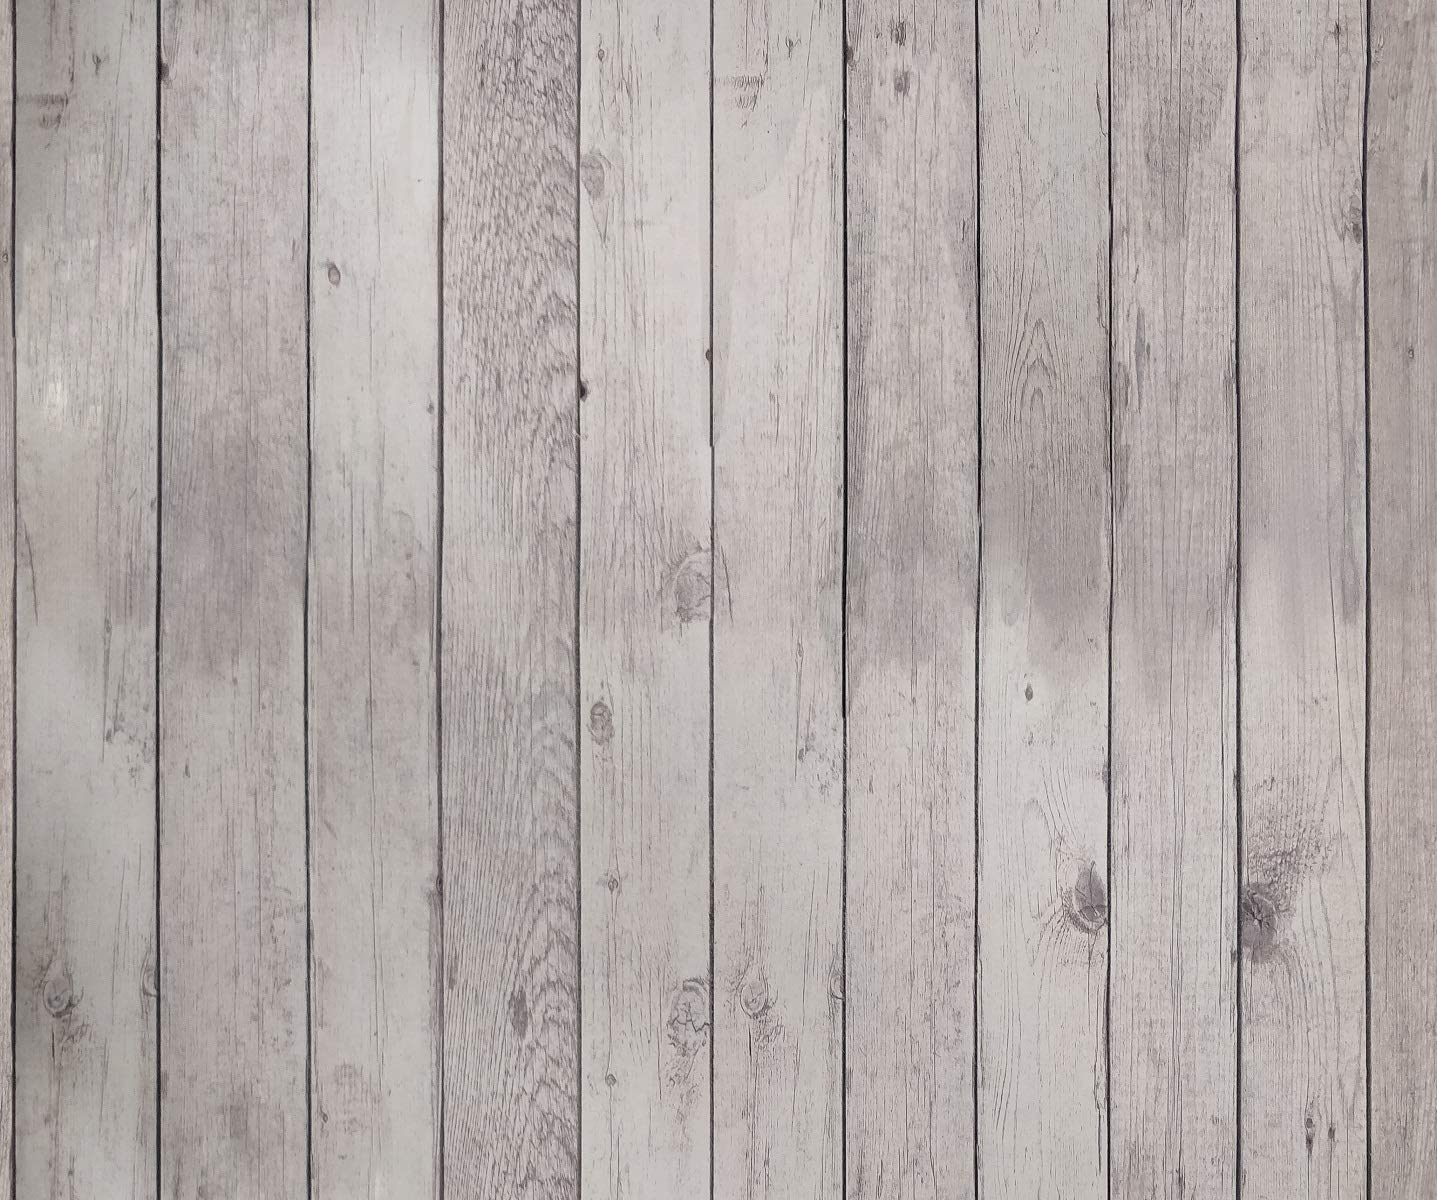 White Tokuwell Self-Adhesive Vintage Wood Vinyl Wrap Film Wallpaper Decor Peel and Stick 17.71 x 78 per Roll